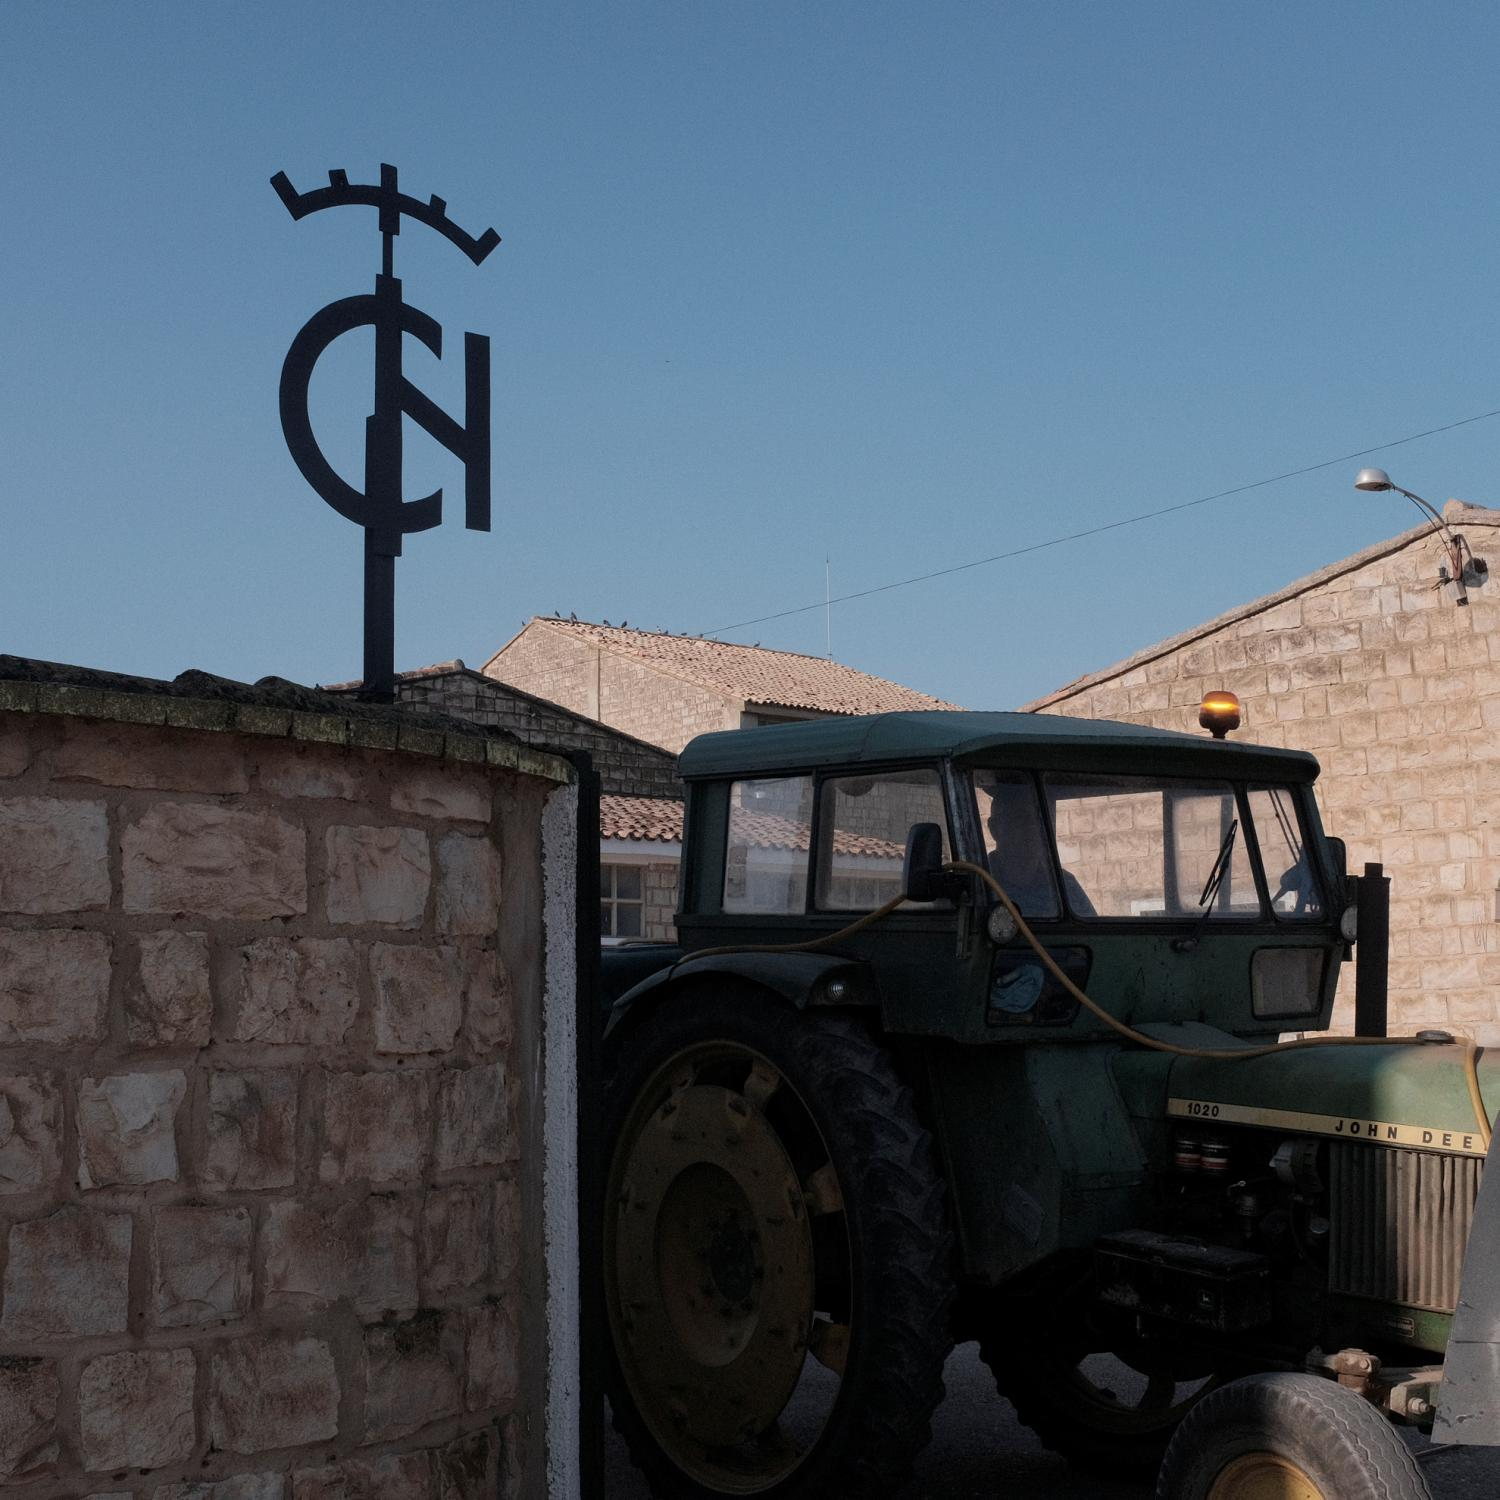 A tractor in the door of the Agricultural Cooperative of Bardenas (Zaragoza) a settlers town near Egea de los Caballeros. The logo of the institute of colonization is on the door. After the Spanish civil war in 1936, under Francisco Franco�s dictatorship, an agriculture reform was enforced leading to the building of more than 300 new towns all around Spain. This towns were populated with people coming from other rural impoverished areas but most of them are in high risk of disappearing because the new generations are moving to cities and abandoning these areas. Copyright: Spanish photojournalist Andoni Lubaki.